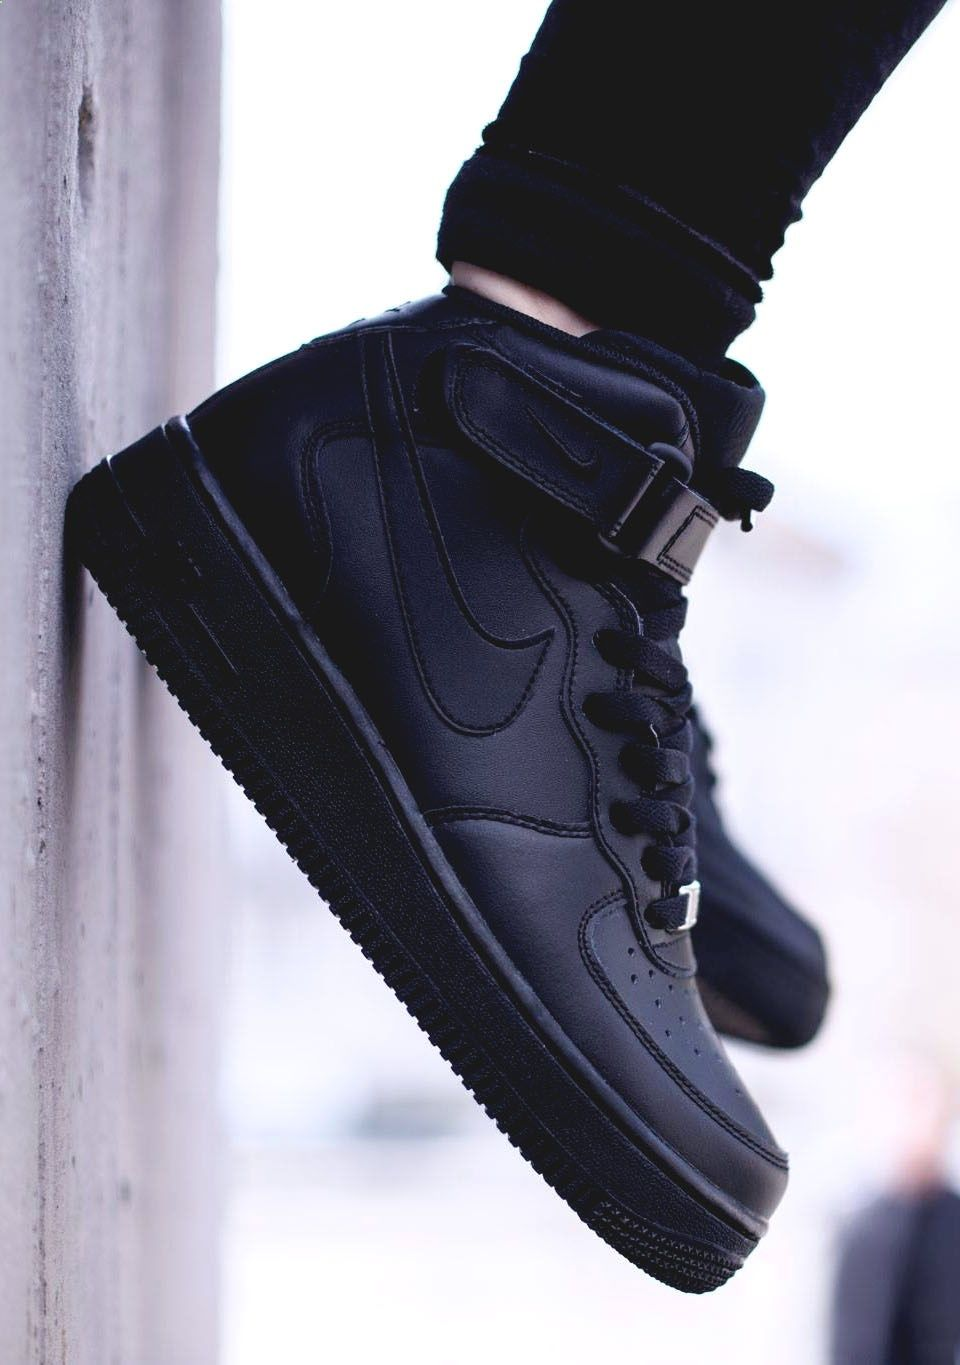 san francisco e9e81 44cda NIKE Air Force 1 Mid GS All Black   Casual Outfits in 2019   Shoes ...